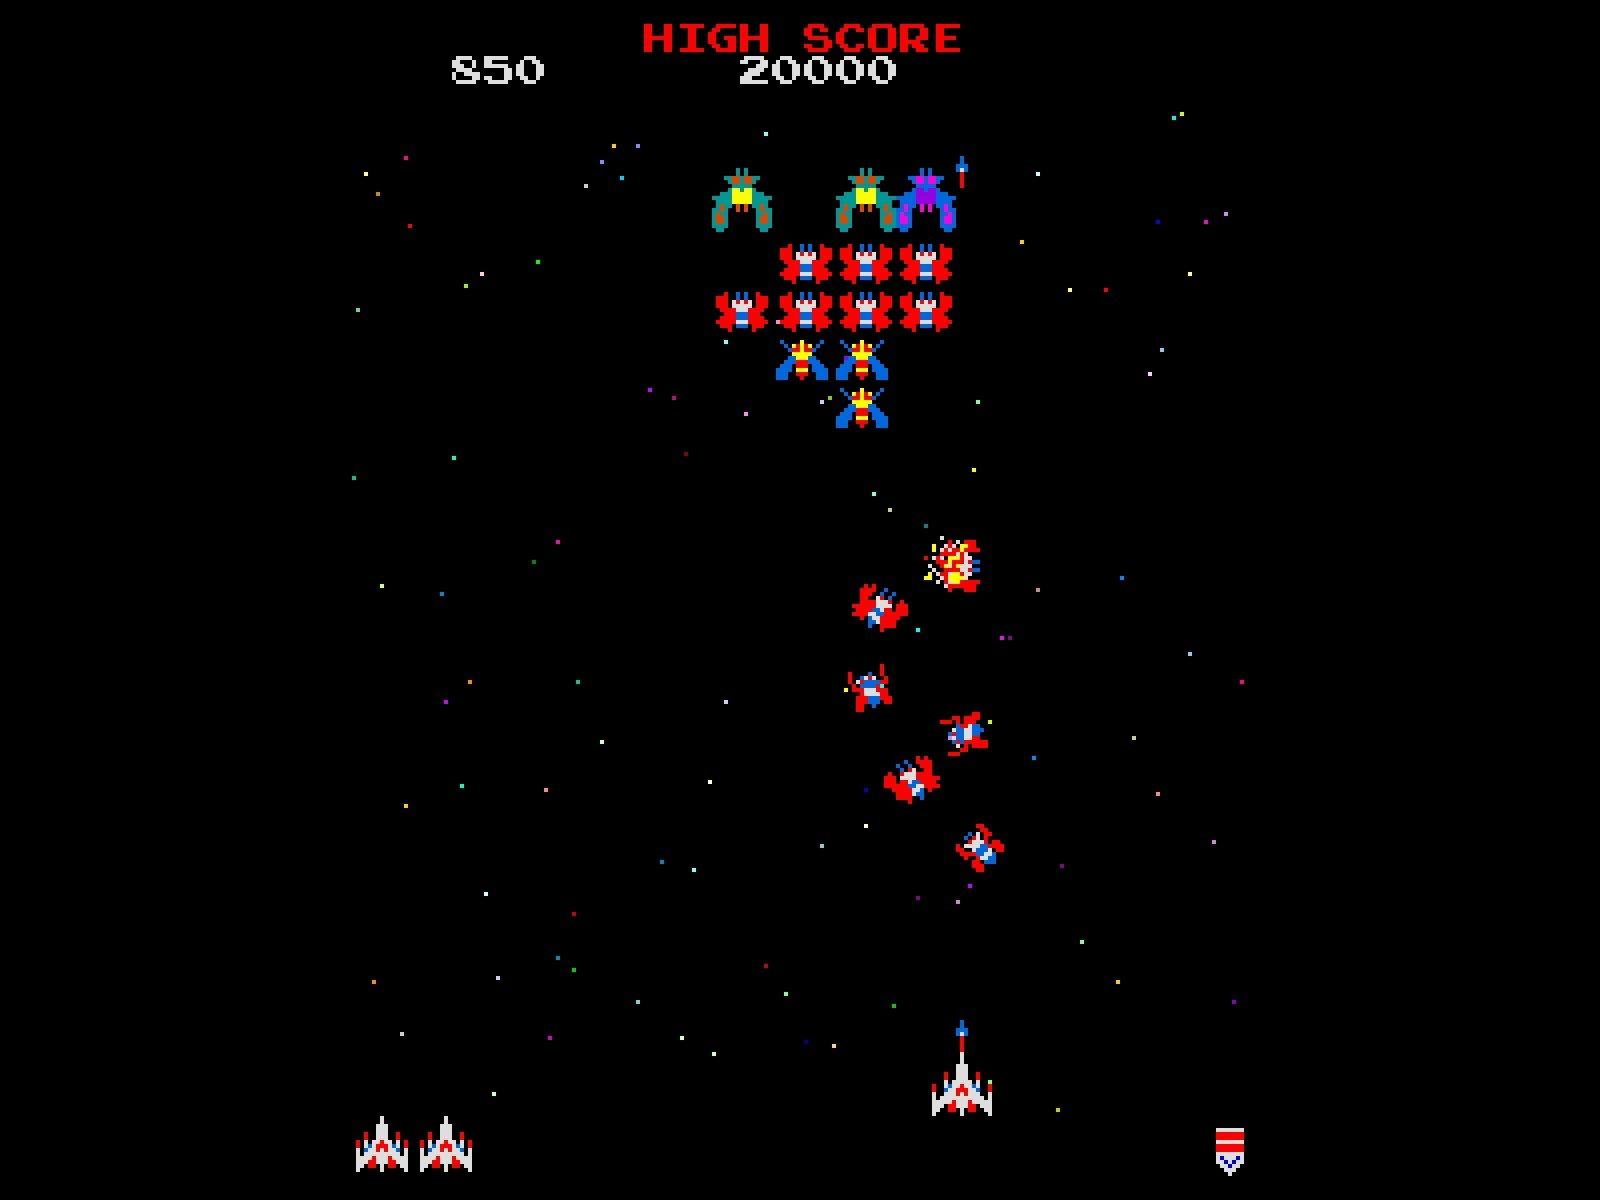 Galaga HD Wallpapers and Background Images   stmednet 1600x1200